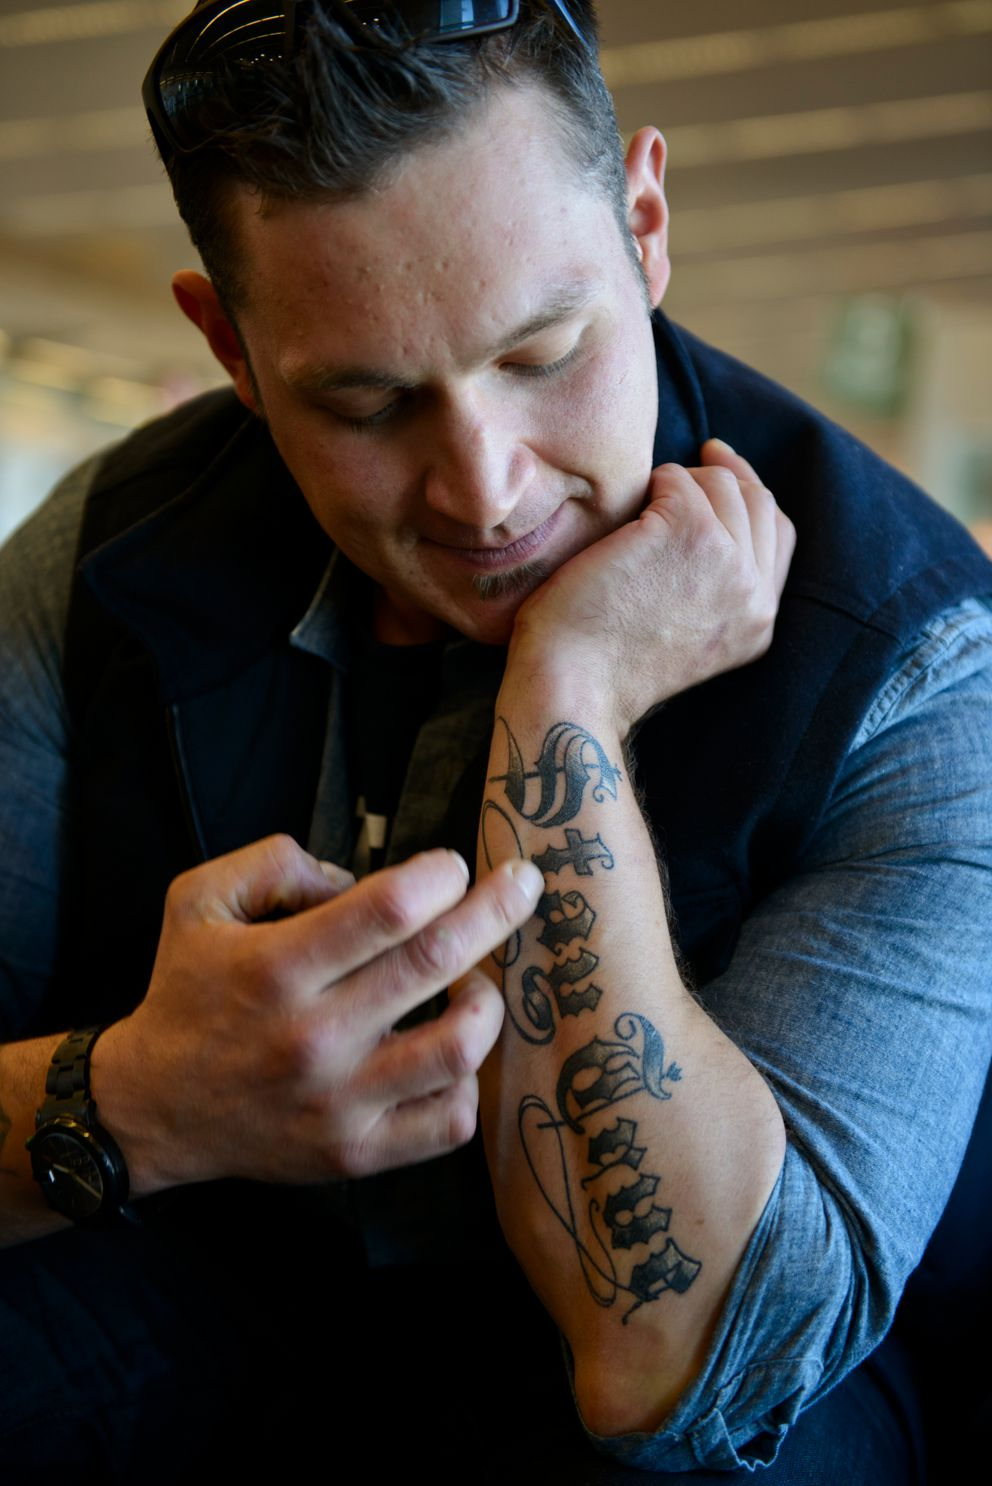 """Nick McGlashan, a crabber and cast member of """"Deadliest Catch,"""" has been speaking publicly about his battle with heroin and alcohol addiction. Photographed at Ted Stevens Anchorage International Airport on May 12. (Marc Lester / Alaska Dispatch News)"""